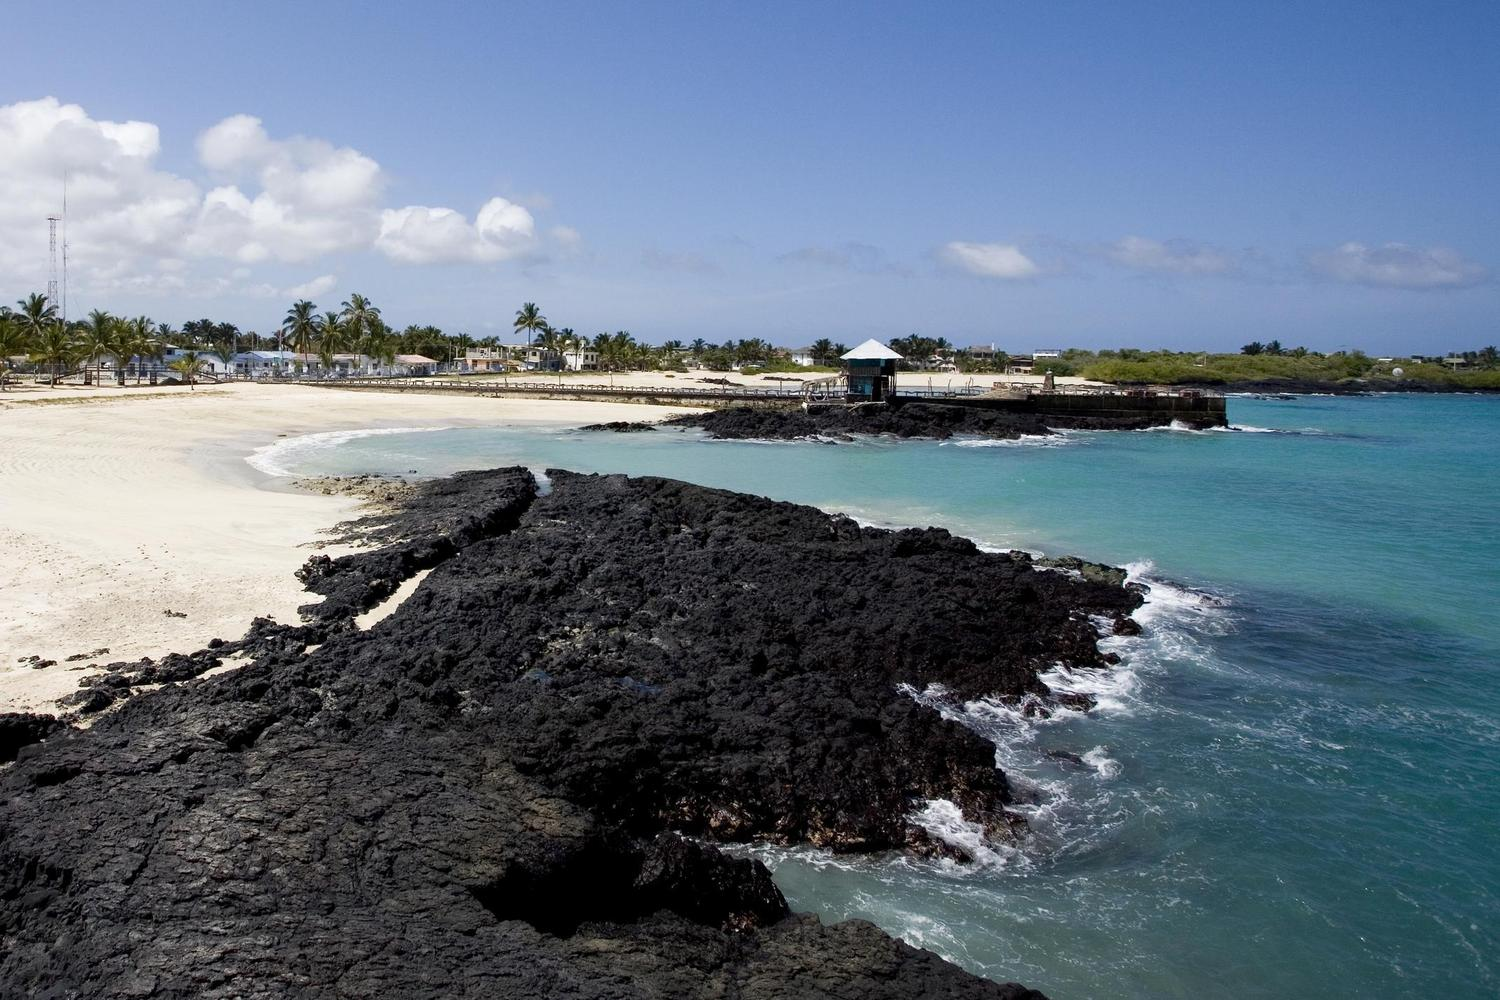 The lovely beach of Puerto Vilamil in the Galapagos